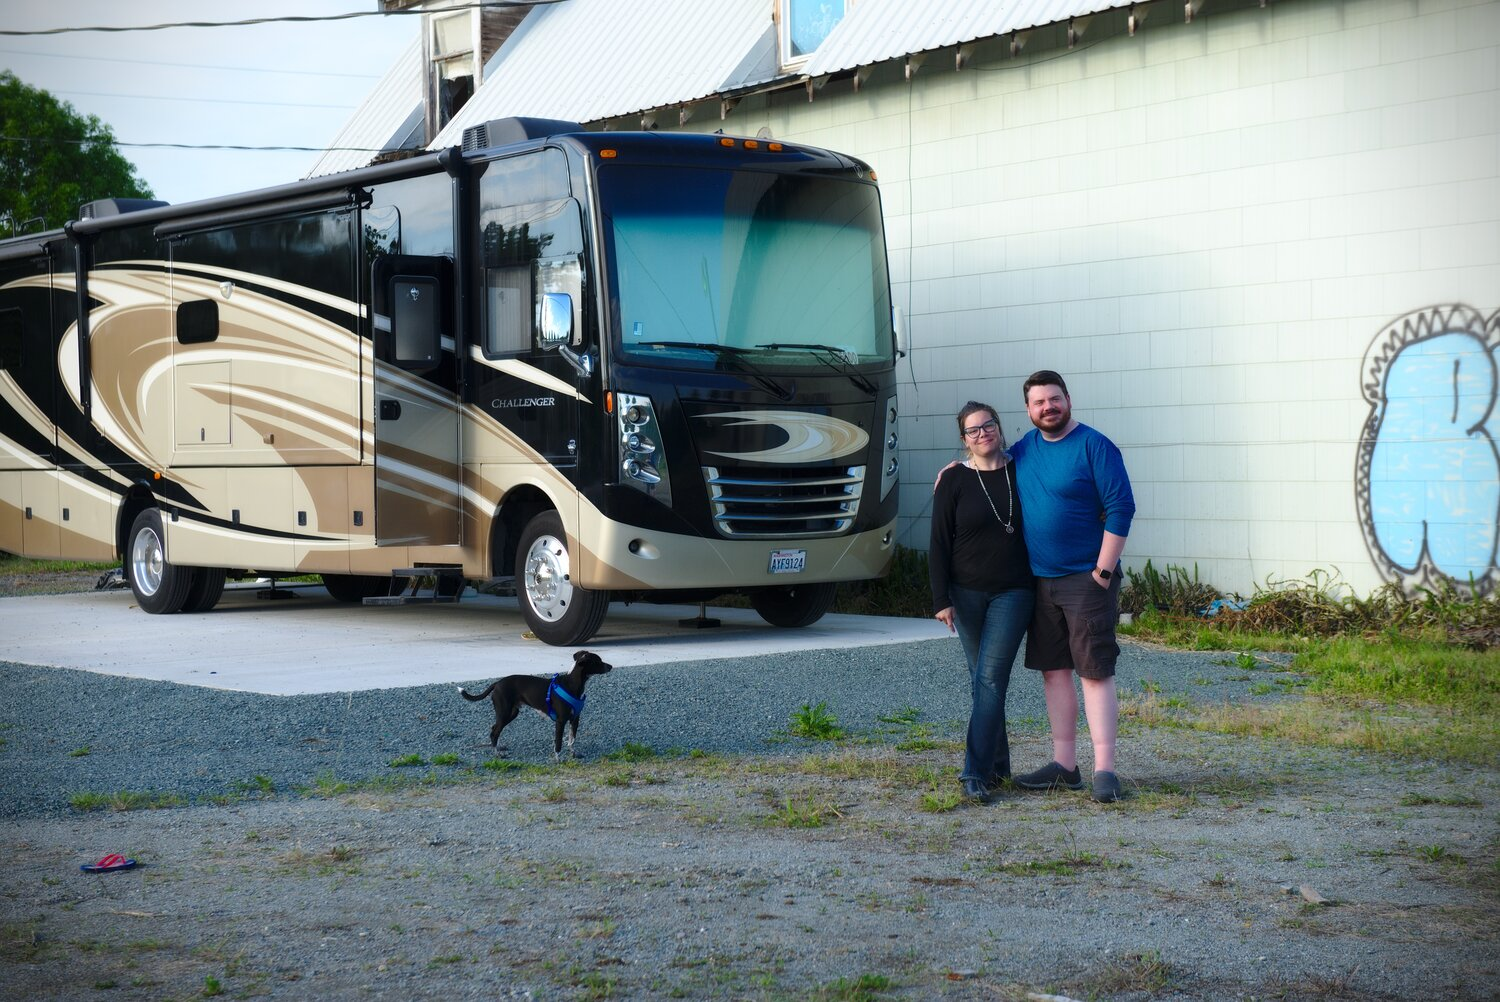 3: Busting RV Stereotypes